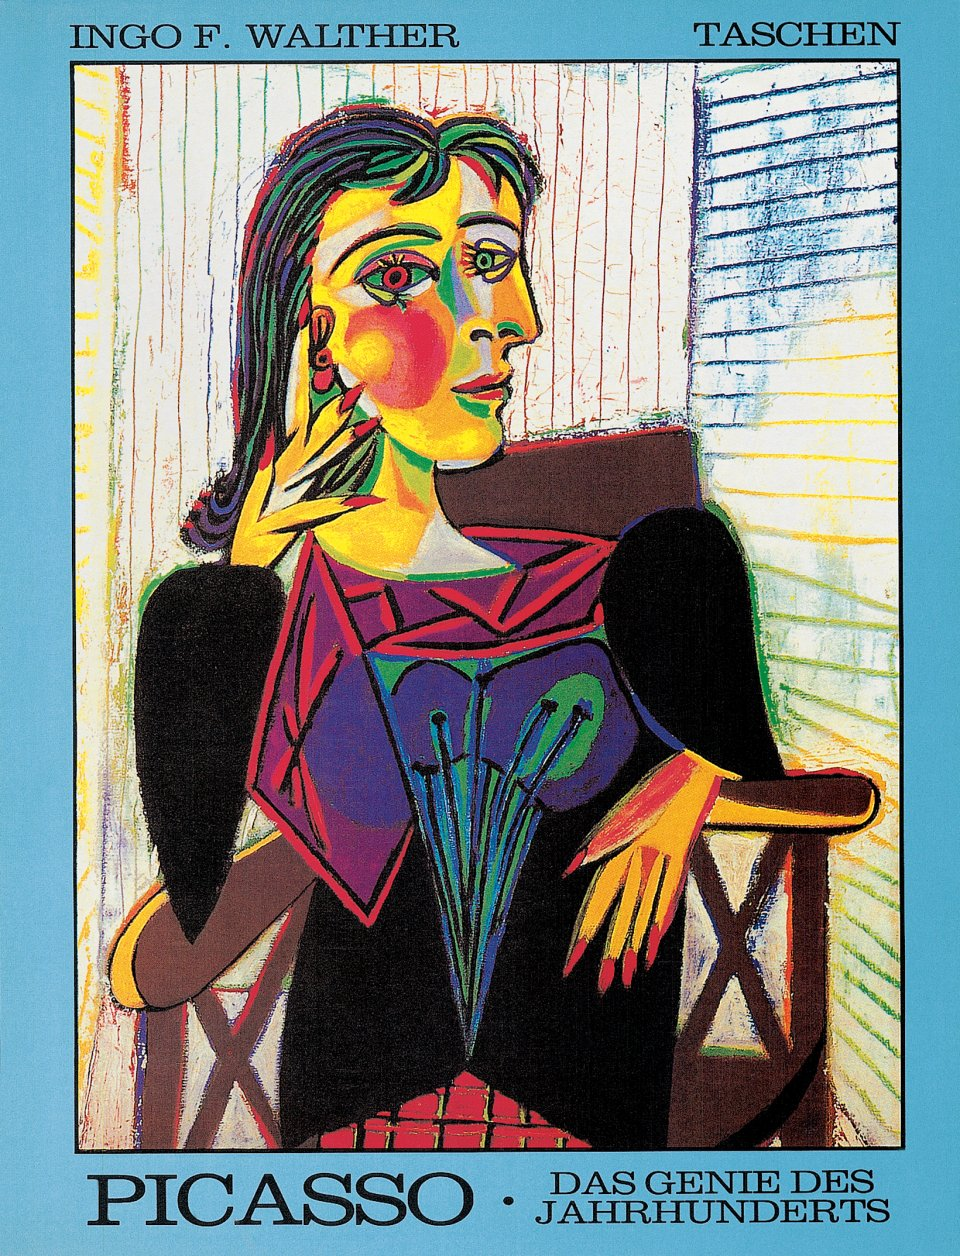 Picasso, the first book in the Basic Art series.